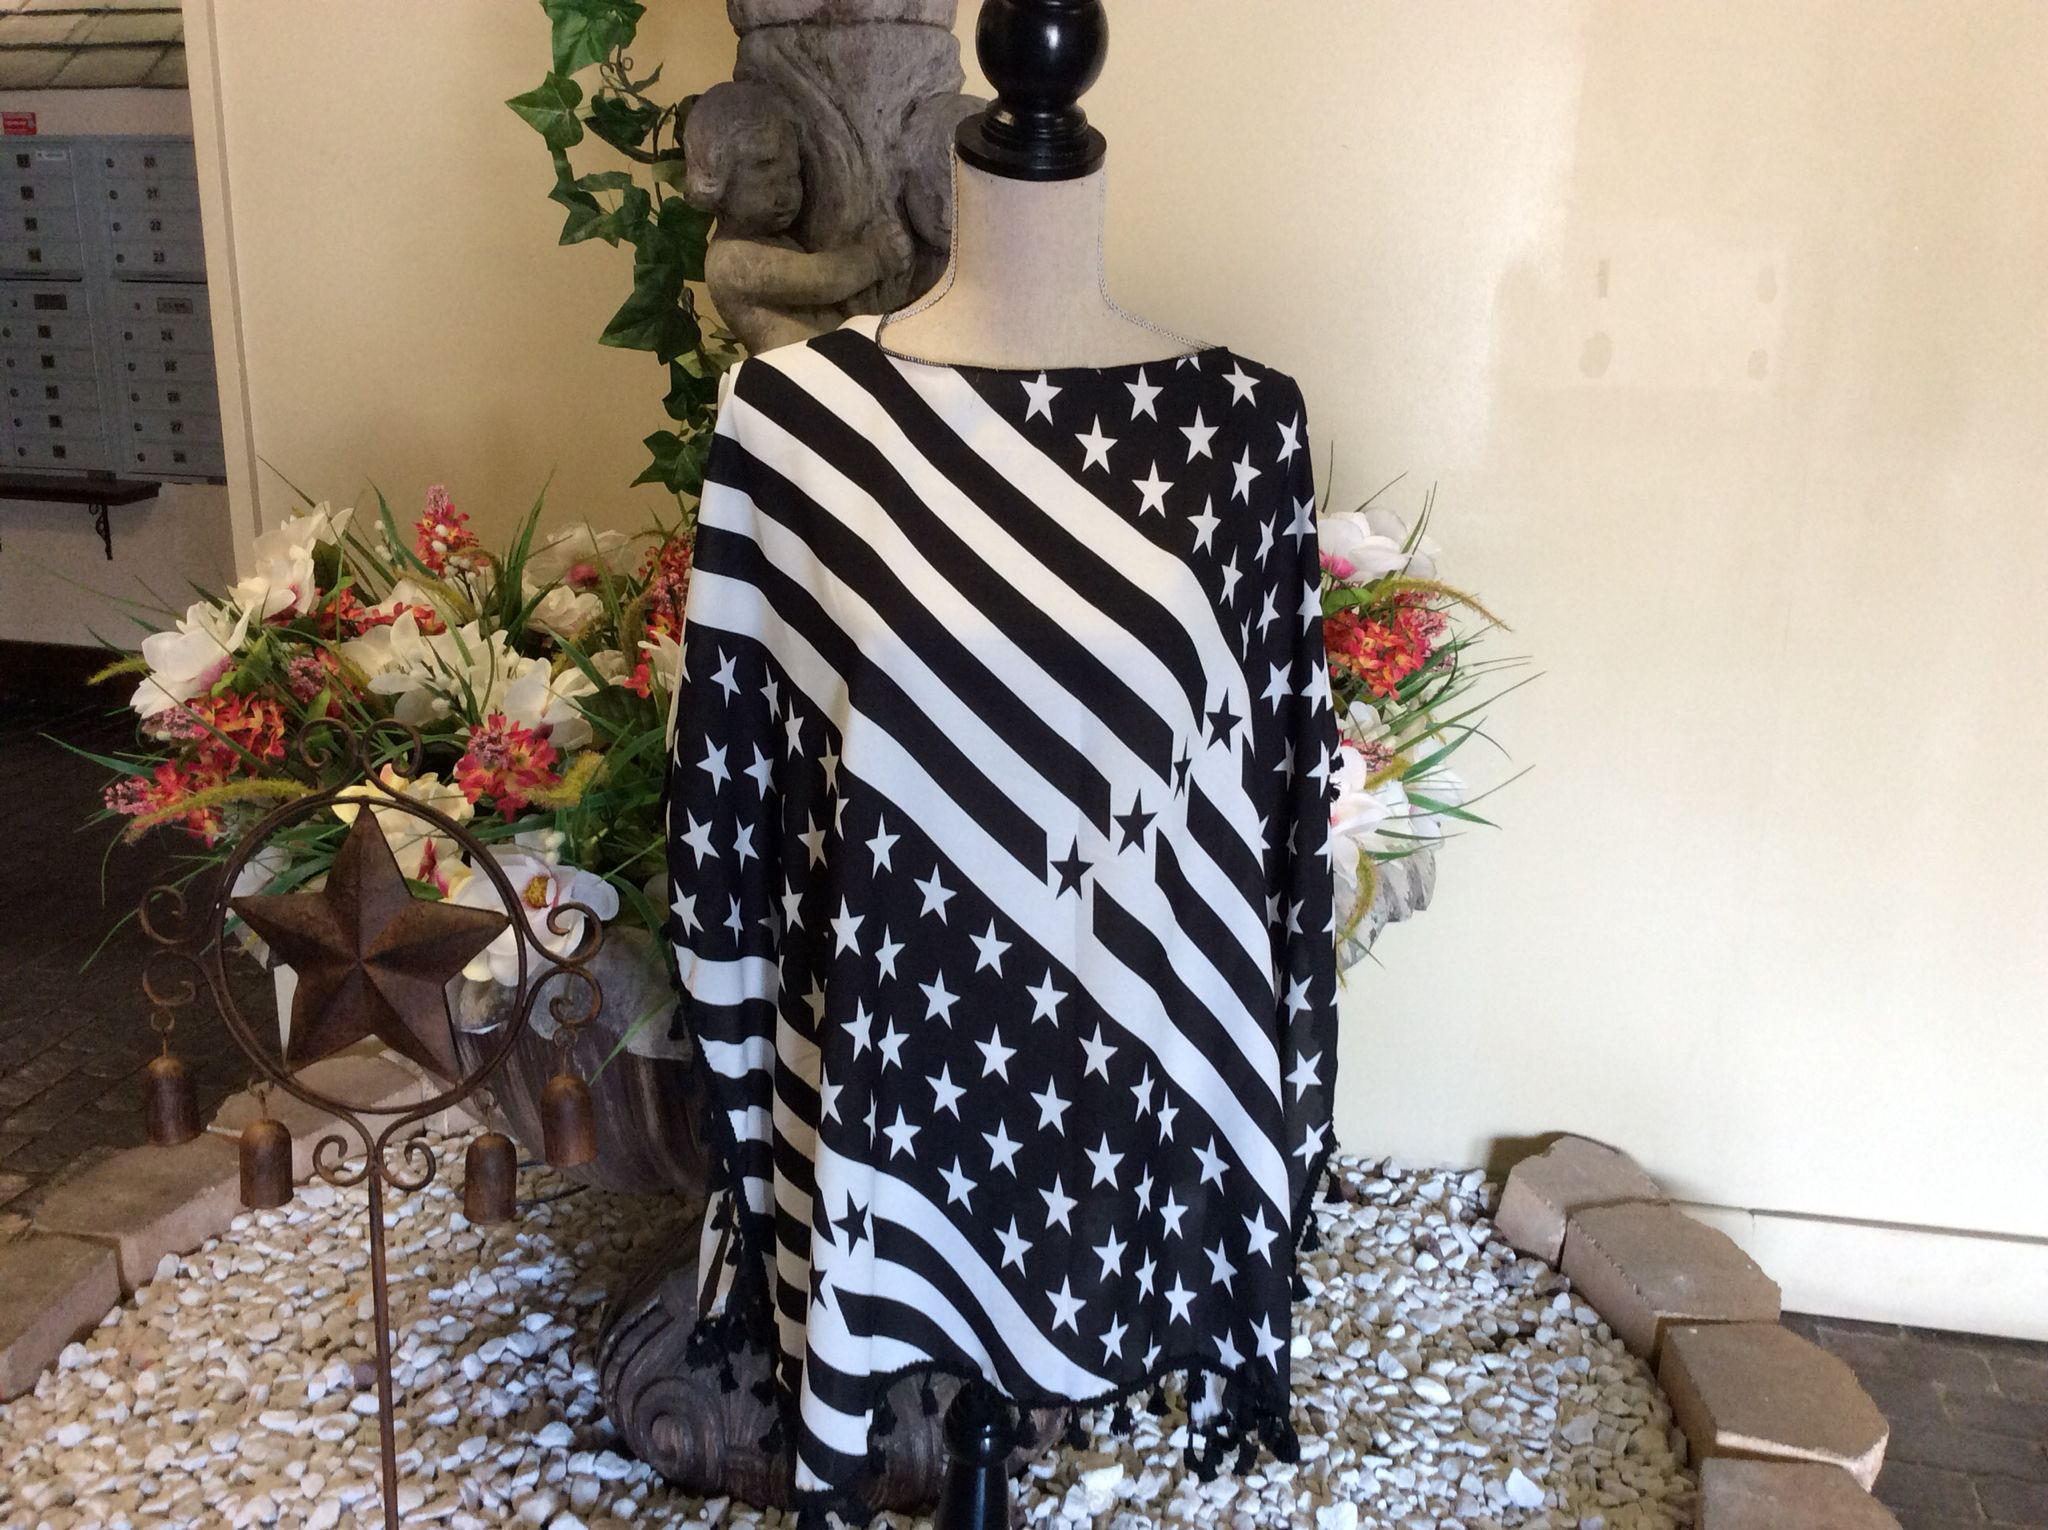 We are excited about celebrating the 4th of July , with new fashions $25.00